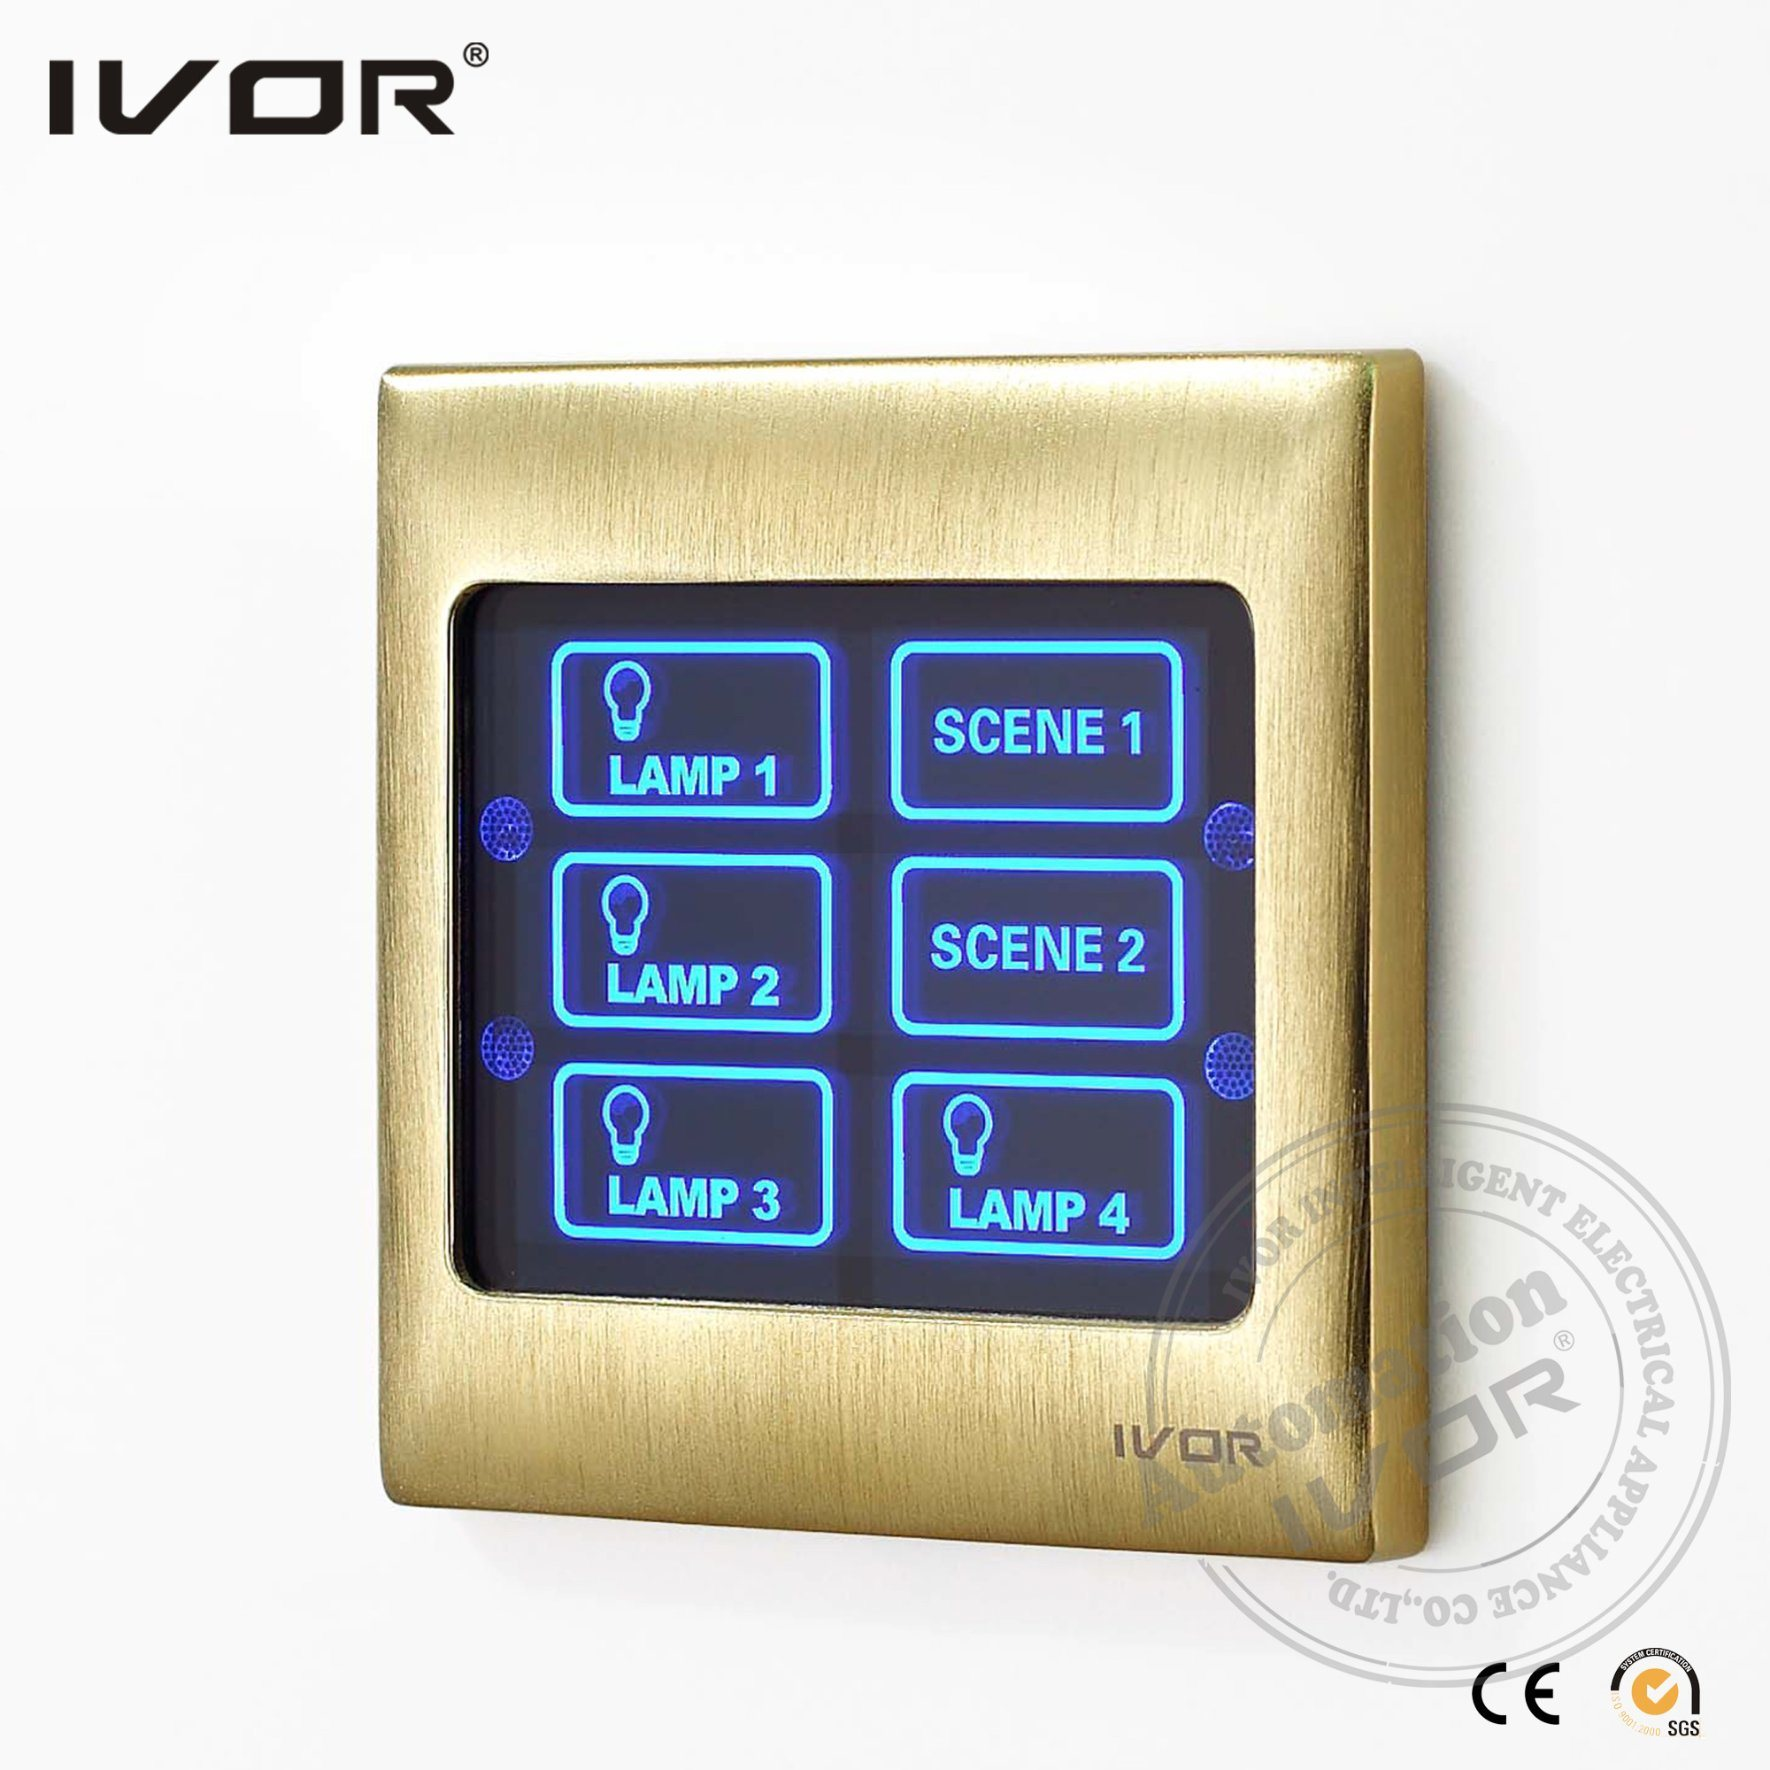 Ivor Smart Home Light Switch with Scene and Remote Control pictures & photos